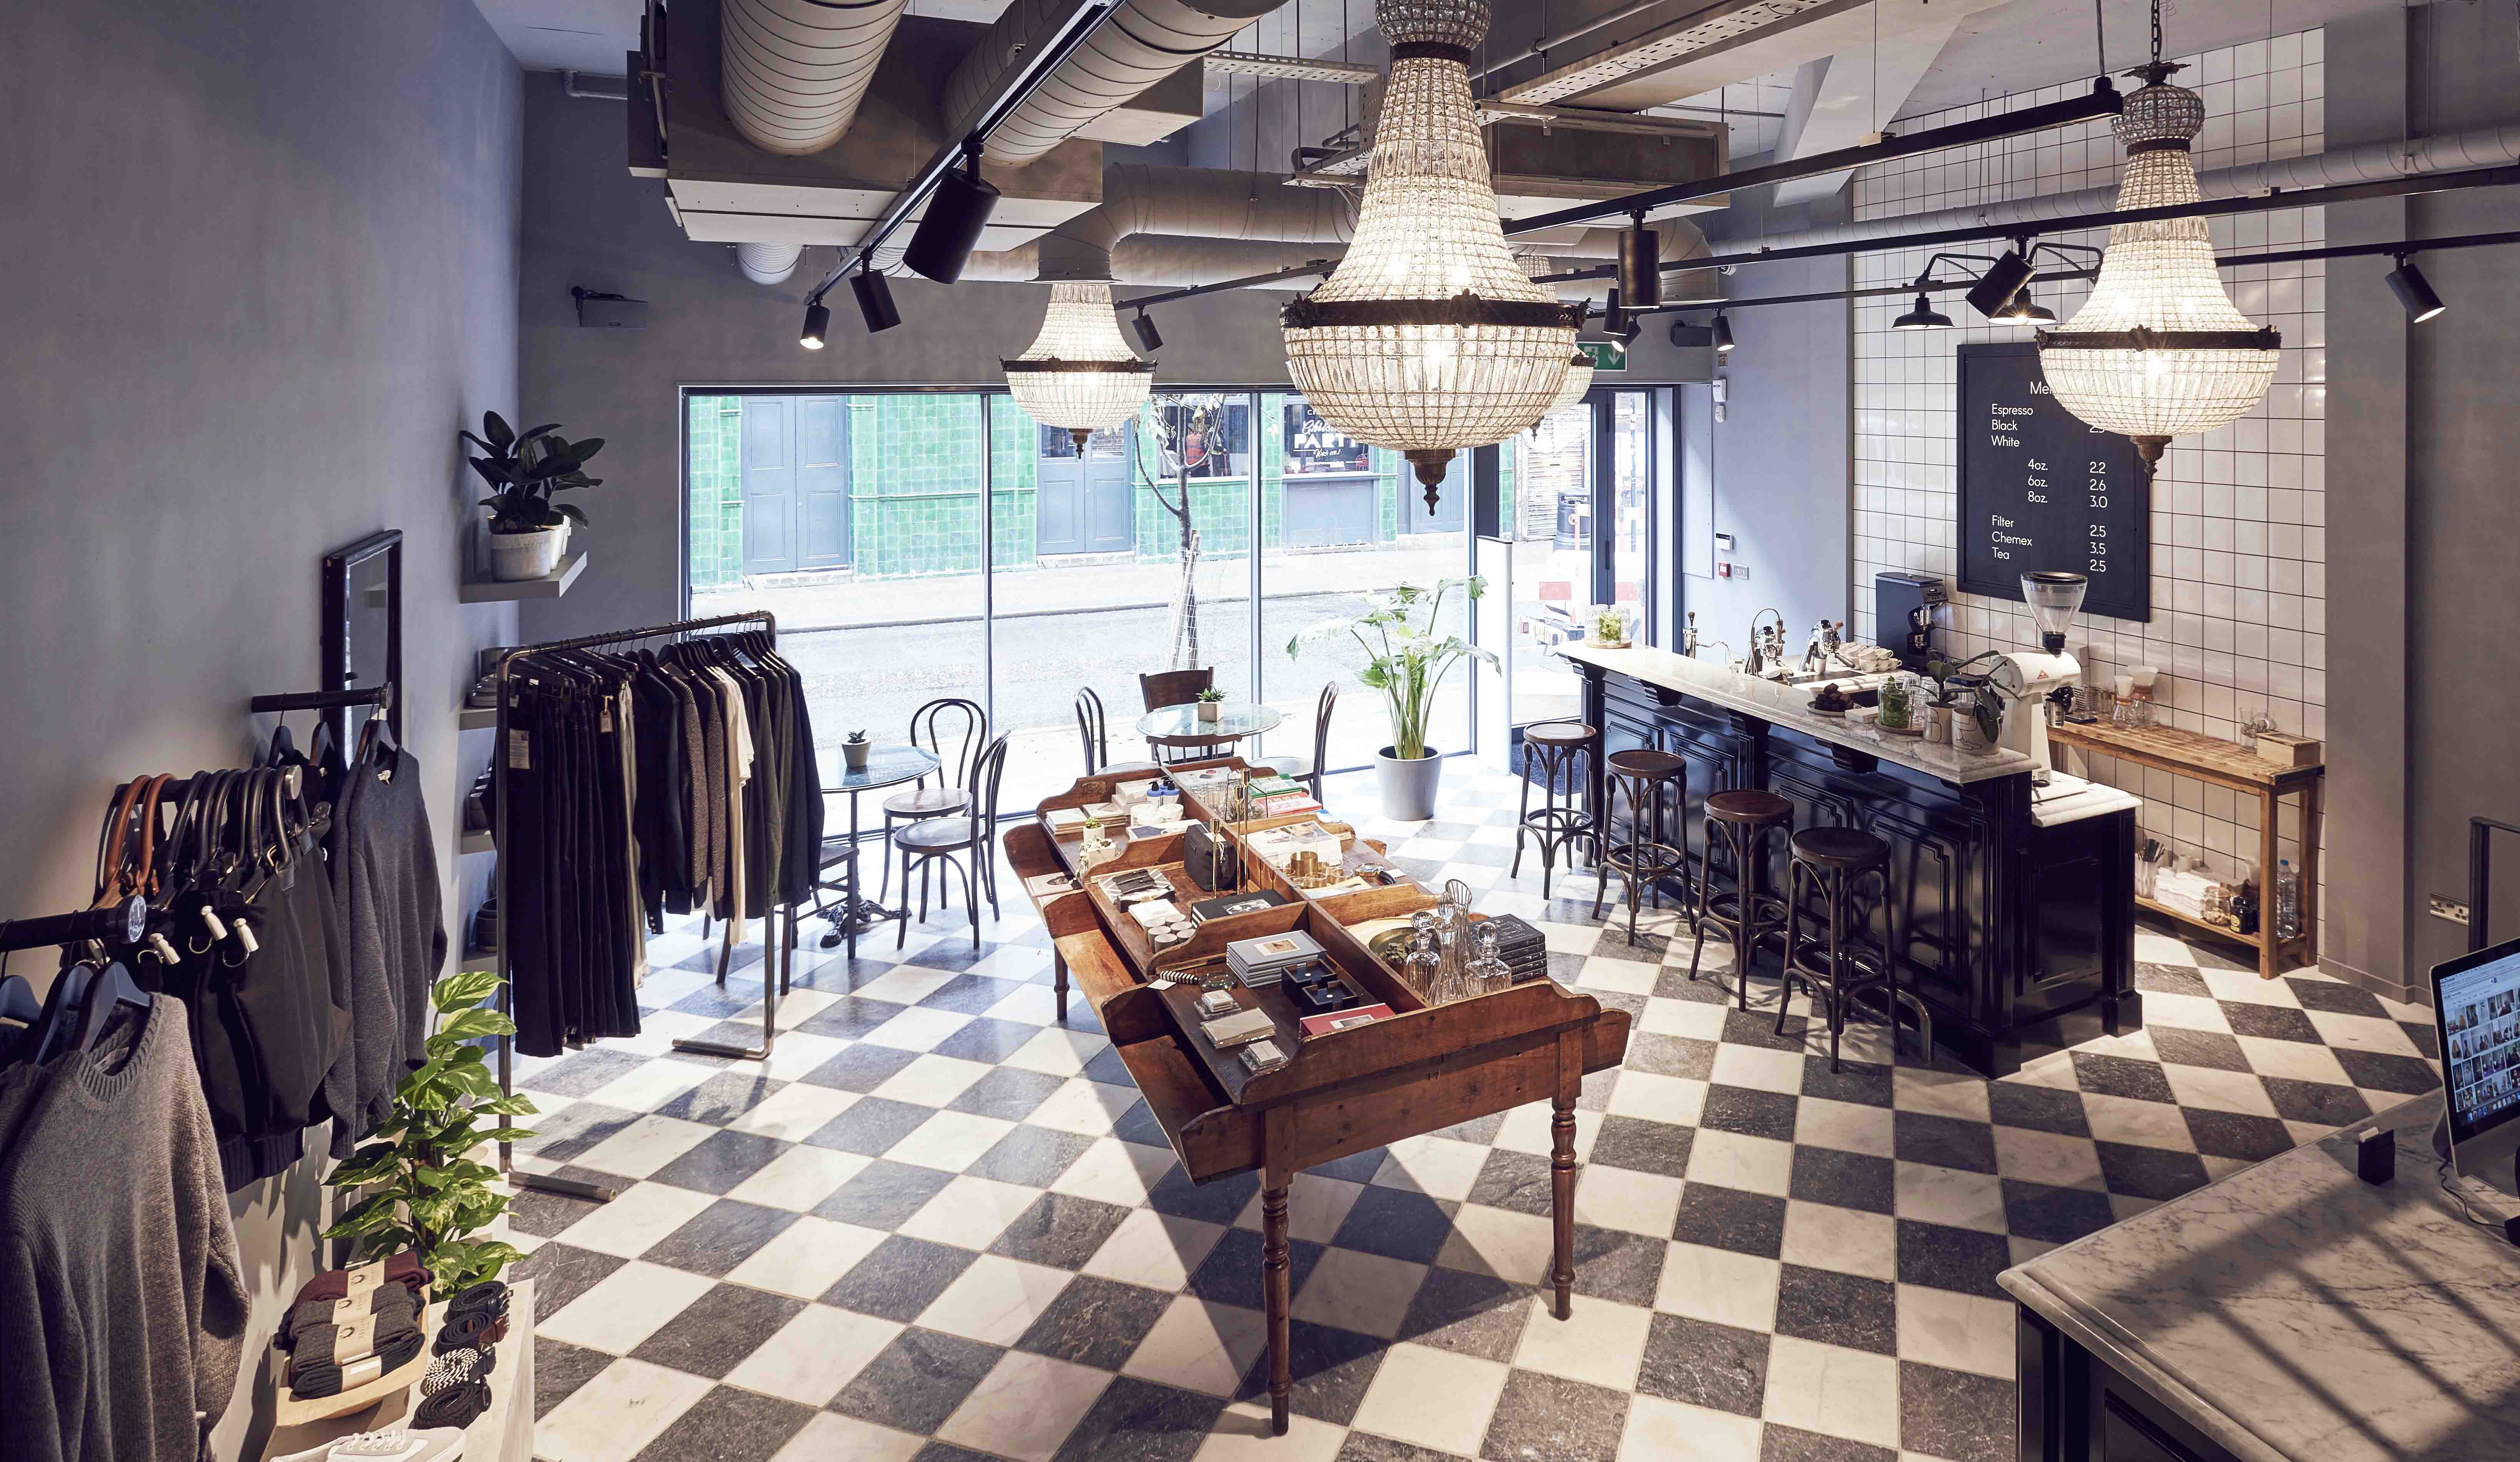 Shop overview with black and white tiled floor, a bar to the right and clothes rails to the left